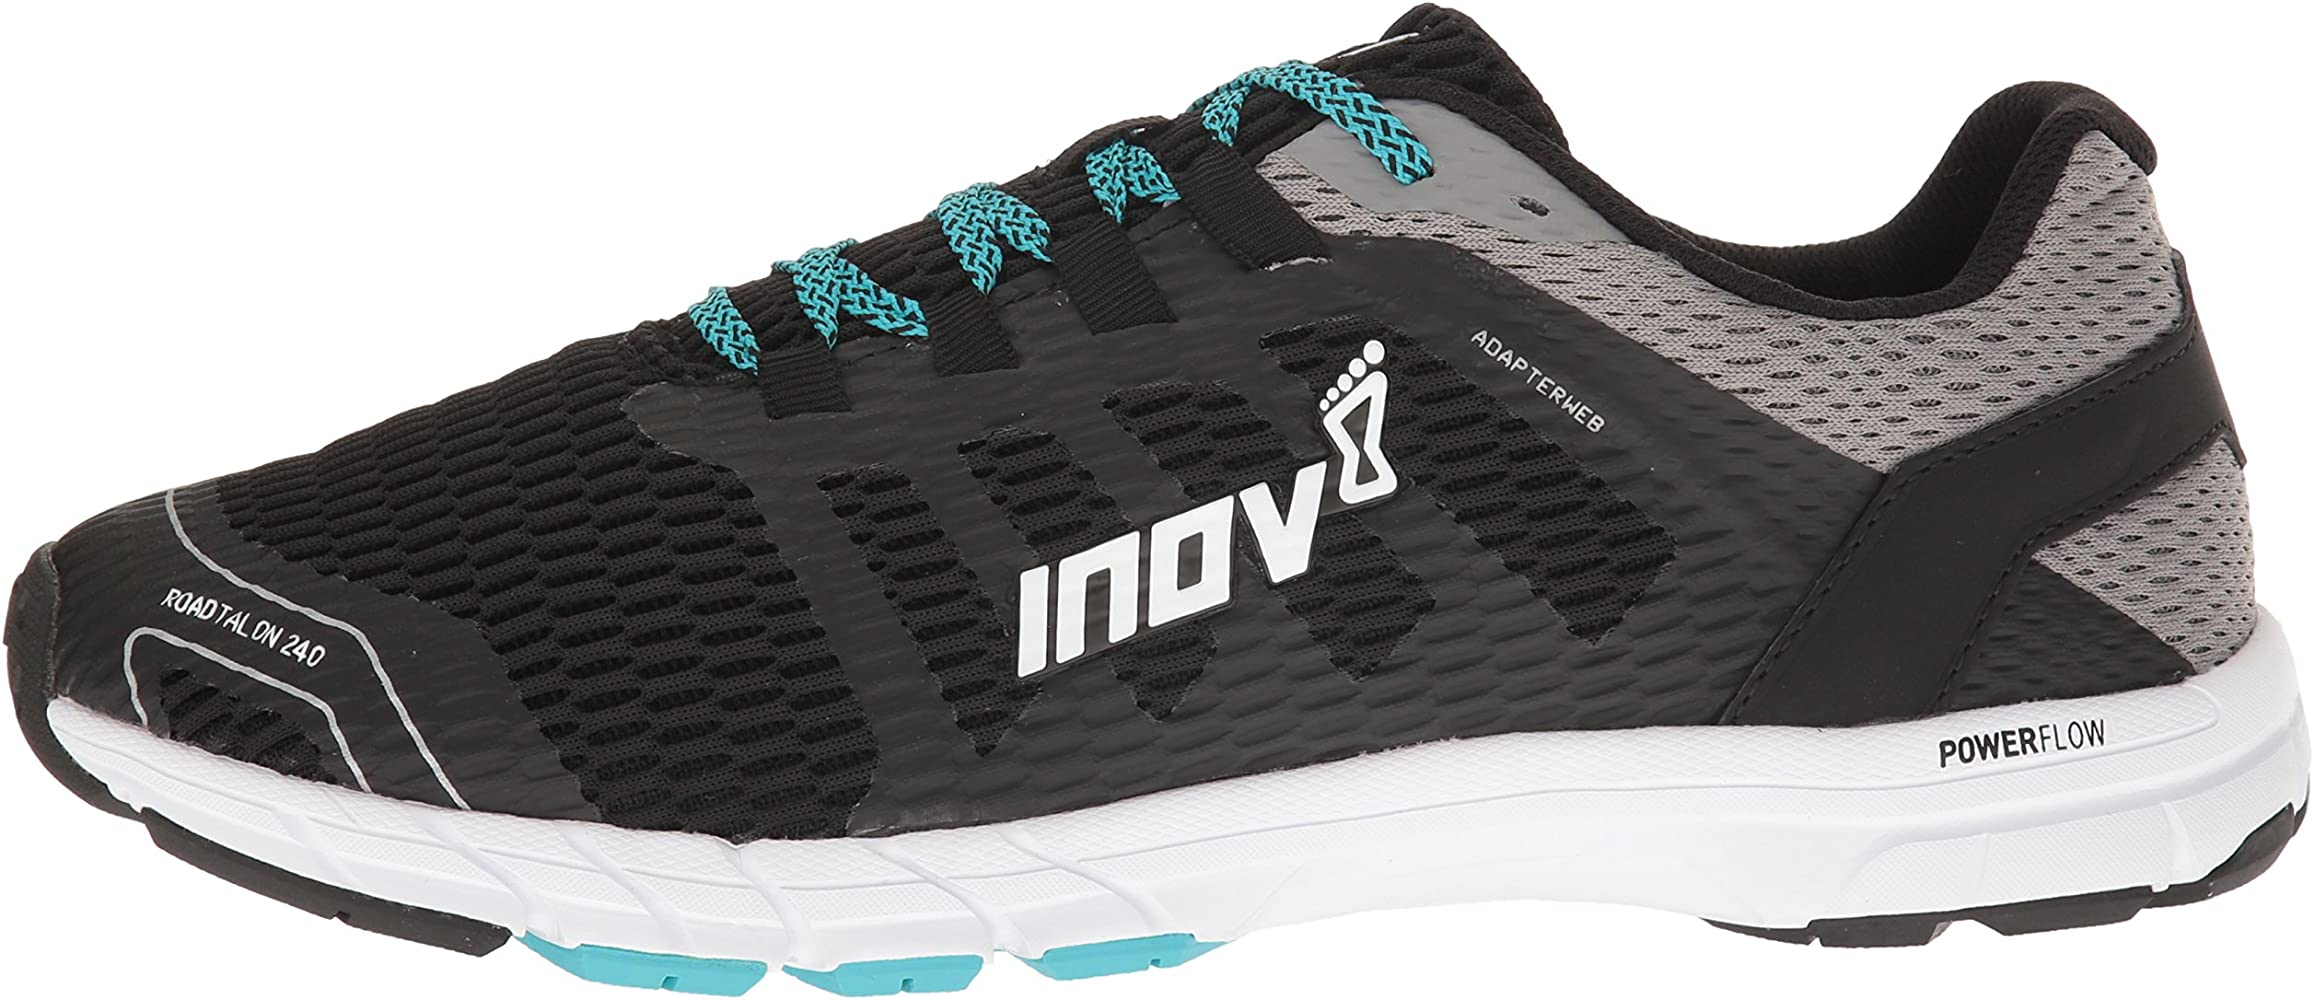 Inov8 Roadtalon 240 Zapatillas para Correr - 40: Amazon.es ...